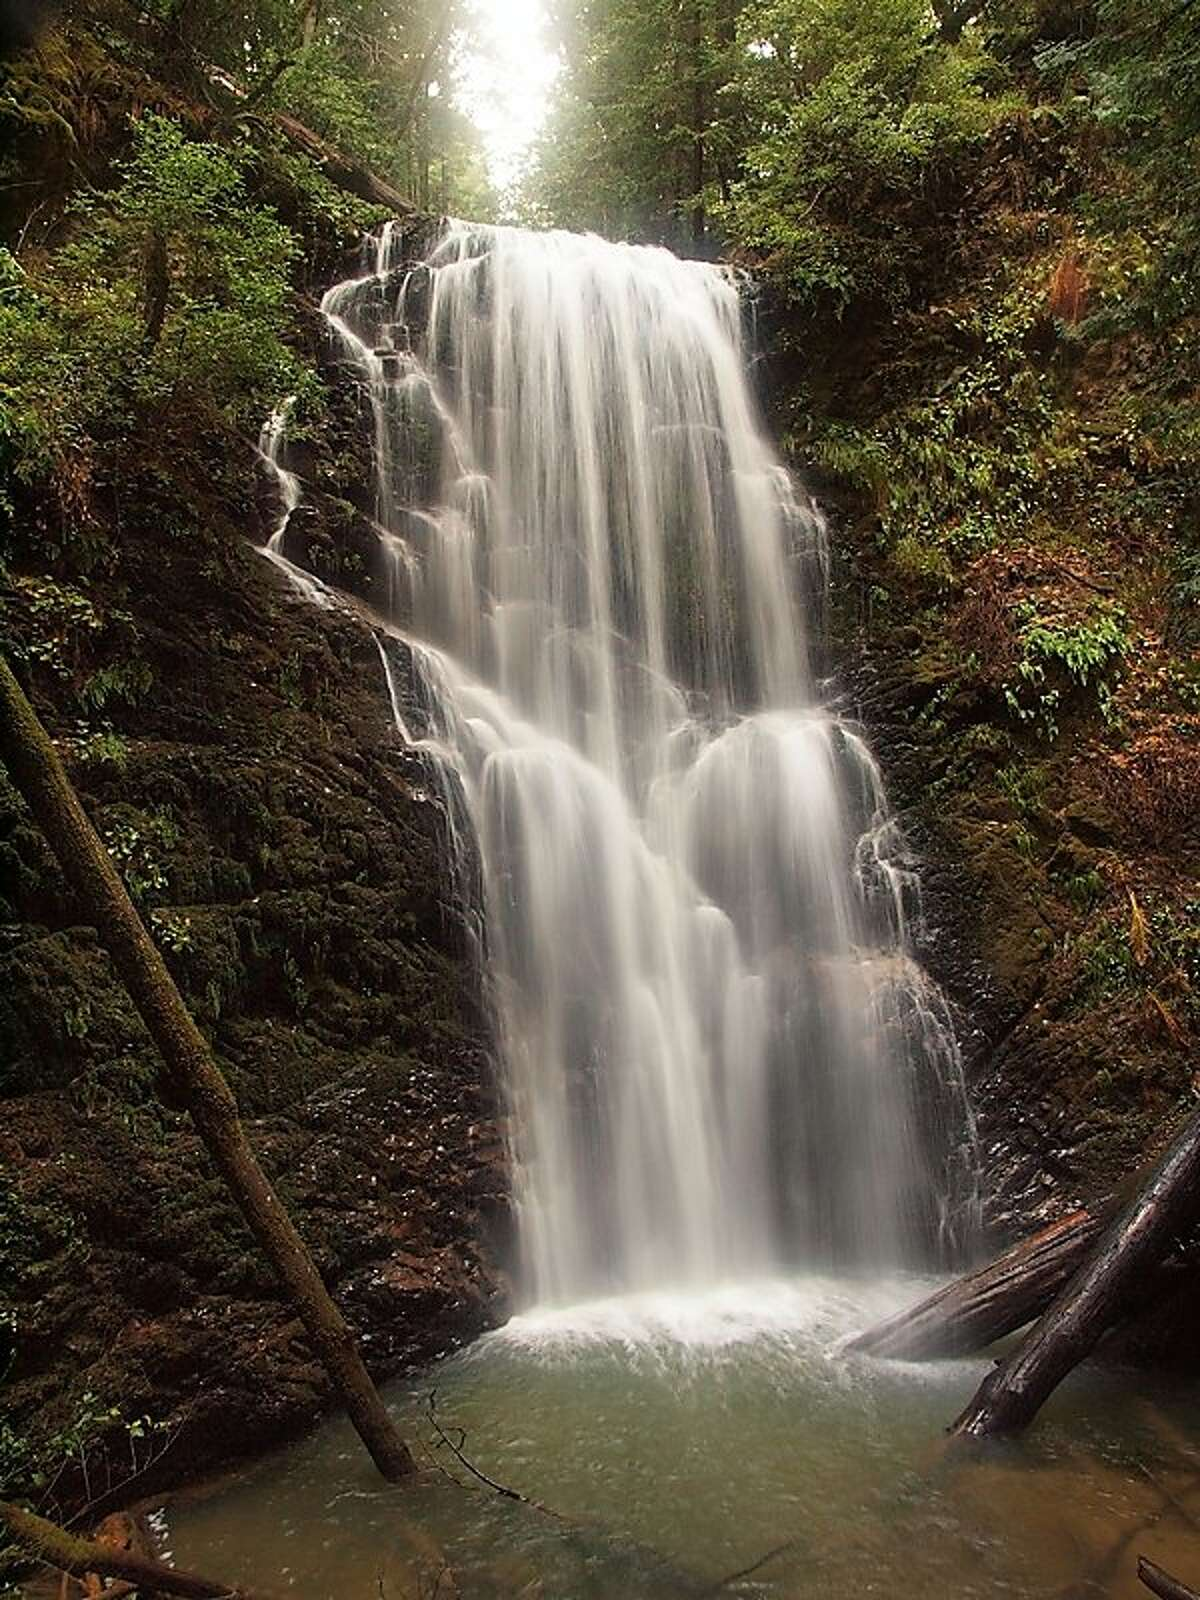 70-foot Berry Creek Falls is the destination for the region's best bike-and-hike, a six-mile ride and half-mile walk from Ranch del Oso, the coastal outpost for Big Basin Redwoods State Park~~